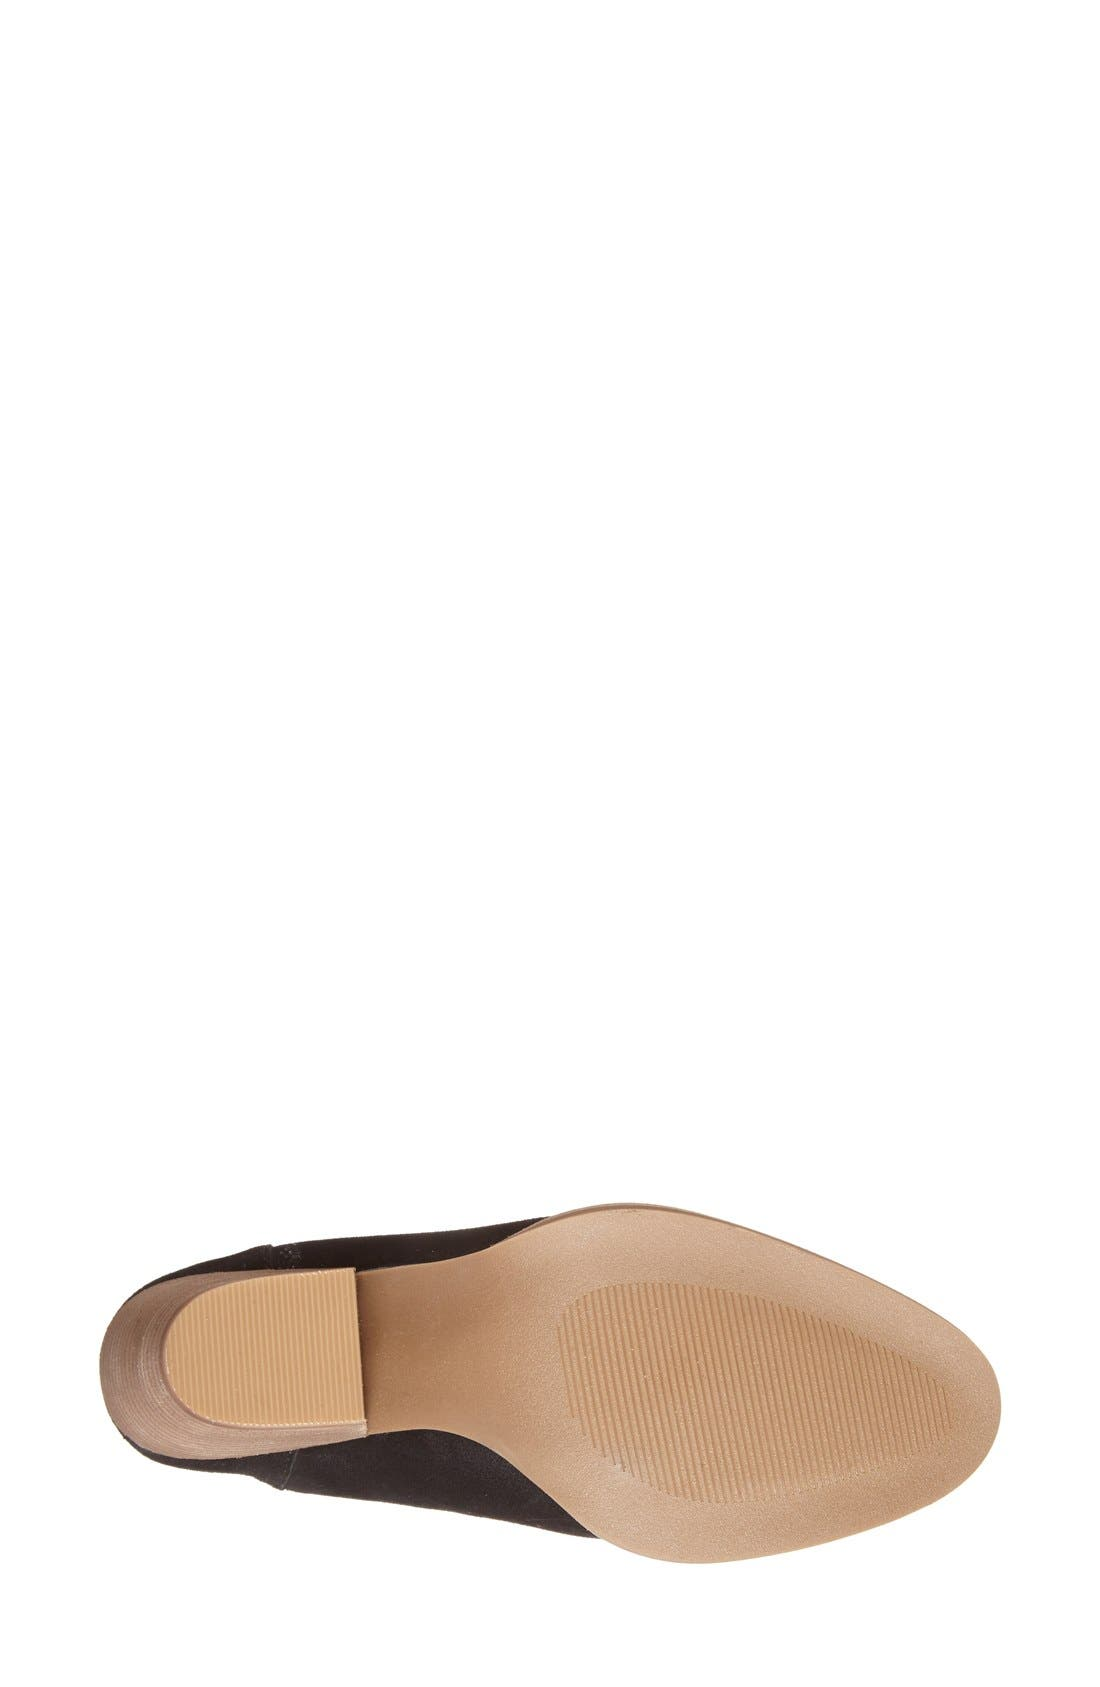 Alternate Image 4  - Steve Madden 'Miilo' Clog (Women)